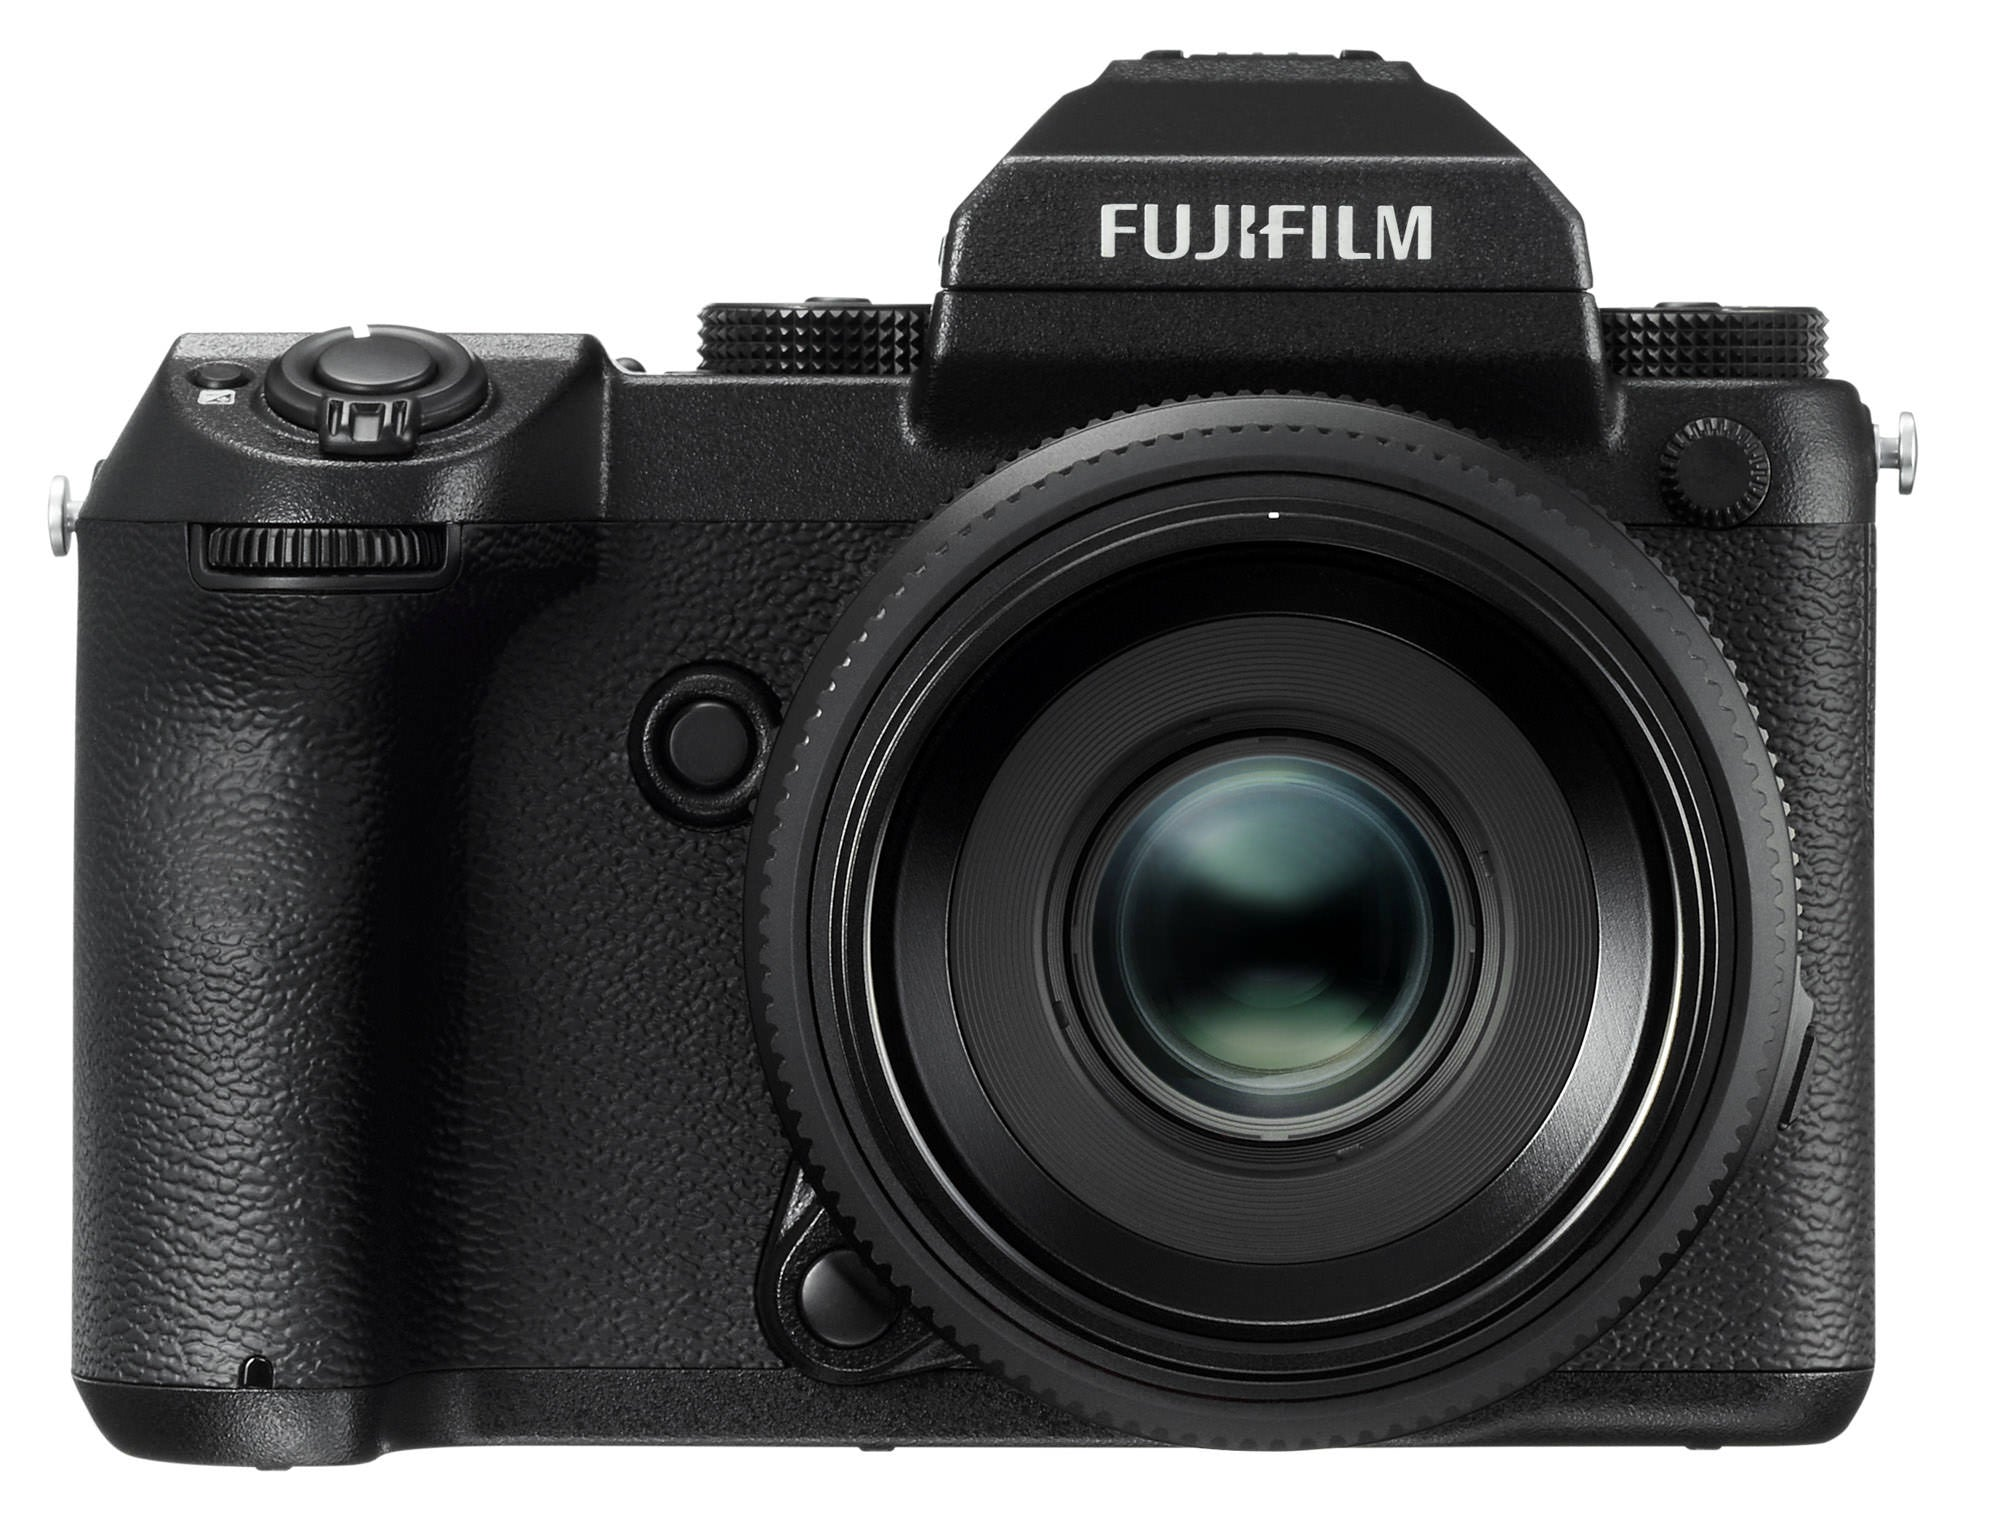 Fujifilm GFX 50S - We show you how small it is and how it will feel in your hands.